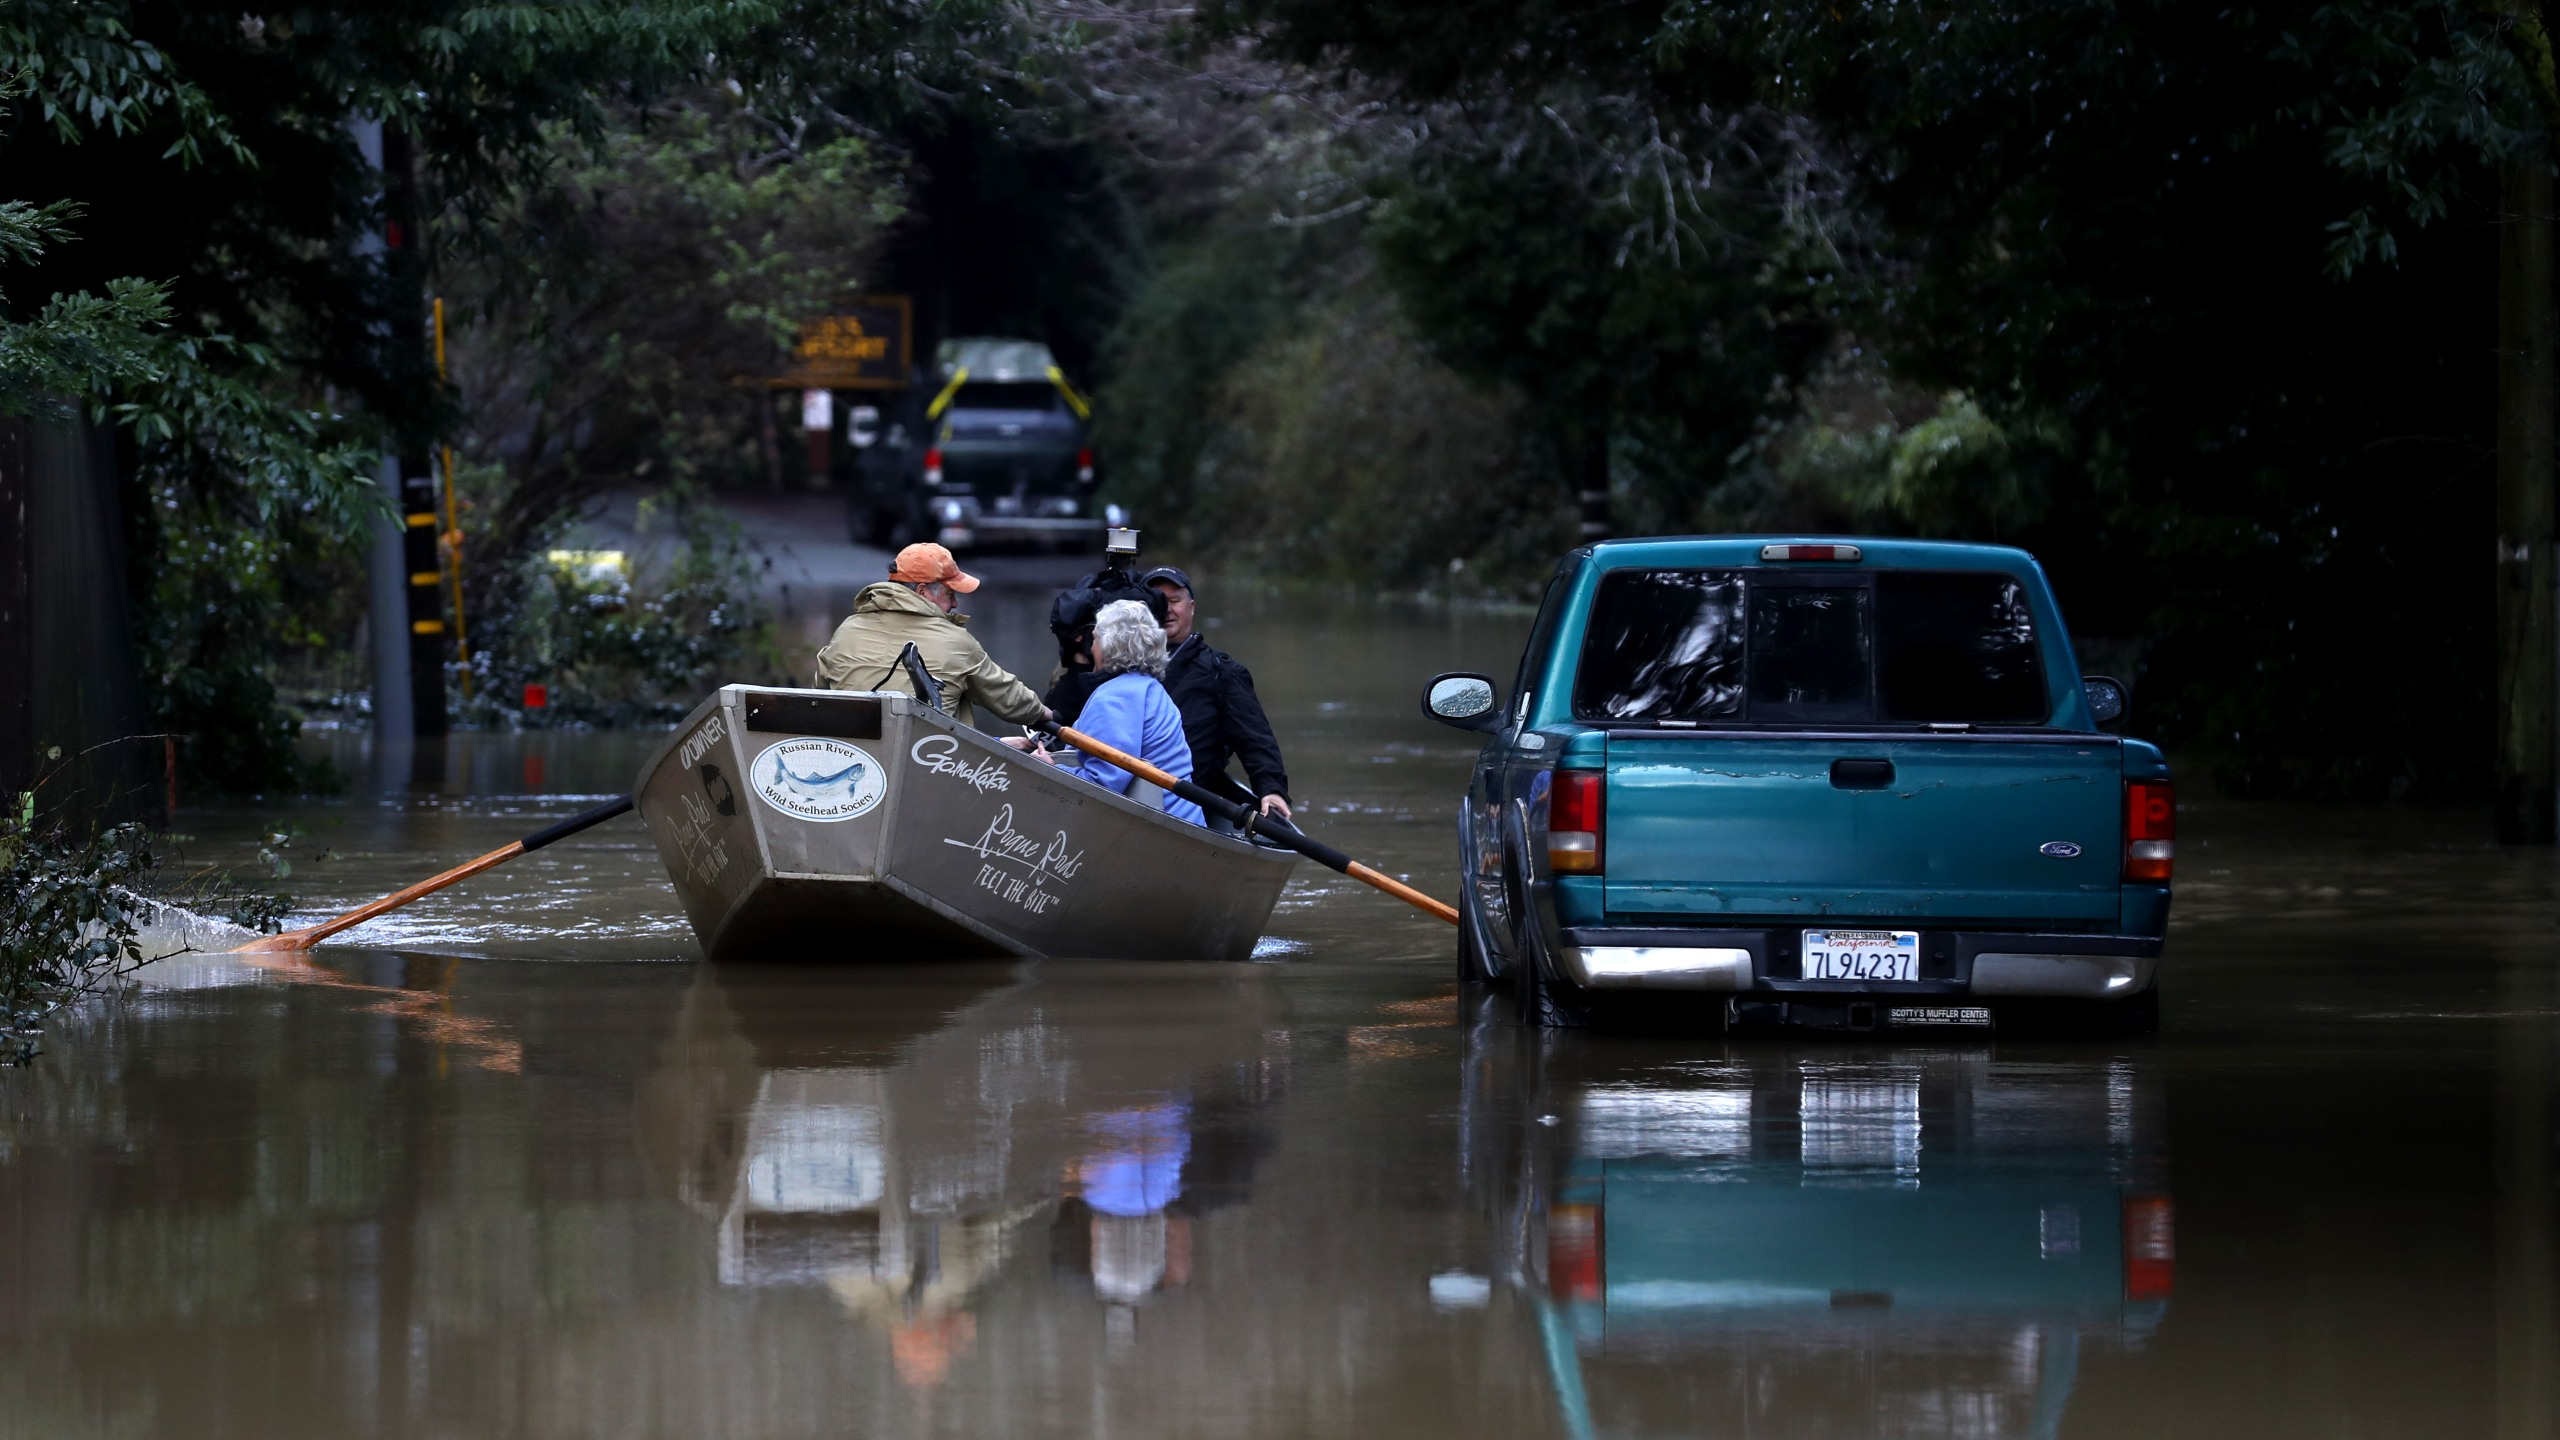 Residents use a boat to navigate floodwaters on Feb. 15, 2019 in Guerneville, Calif. An atmospheric river, a narrow corridor of concentrated moisture in the atmosphere, is bringing heavy rains to Northern California that is causing rivers to overflow their banks and flood many areas around the Russian River. (Credit: Justin Sullivan/Getty Images)